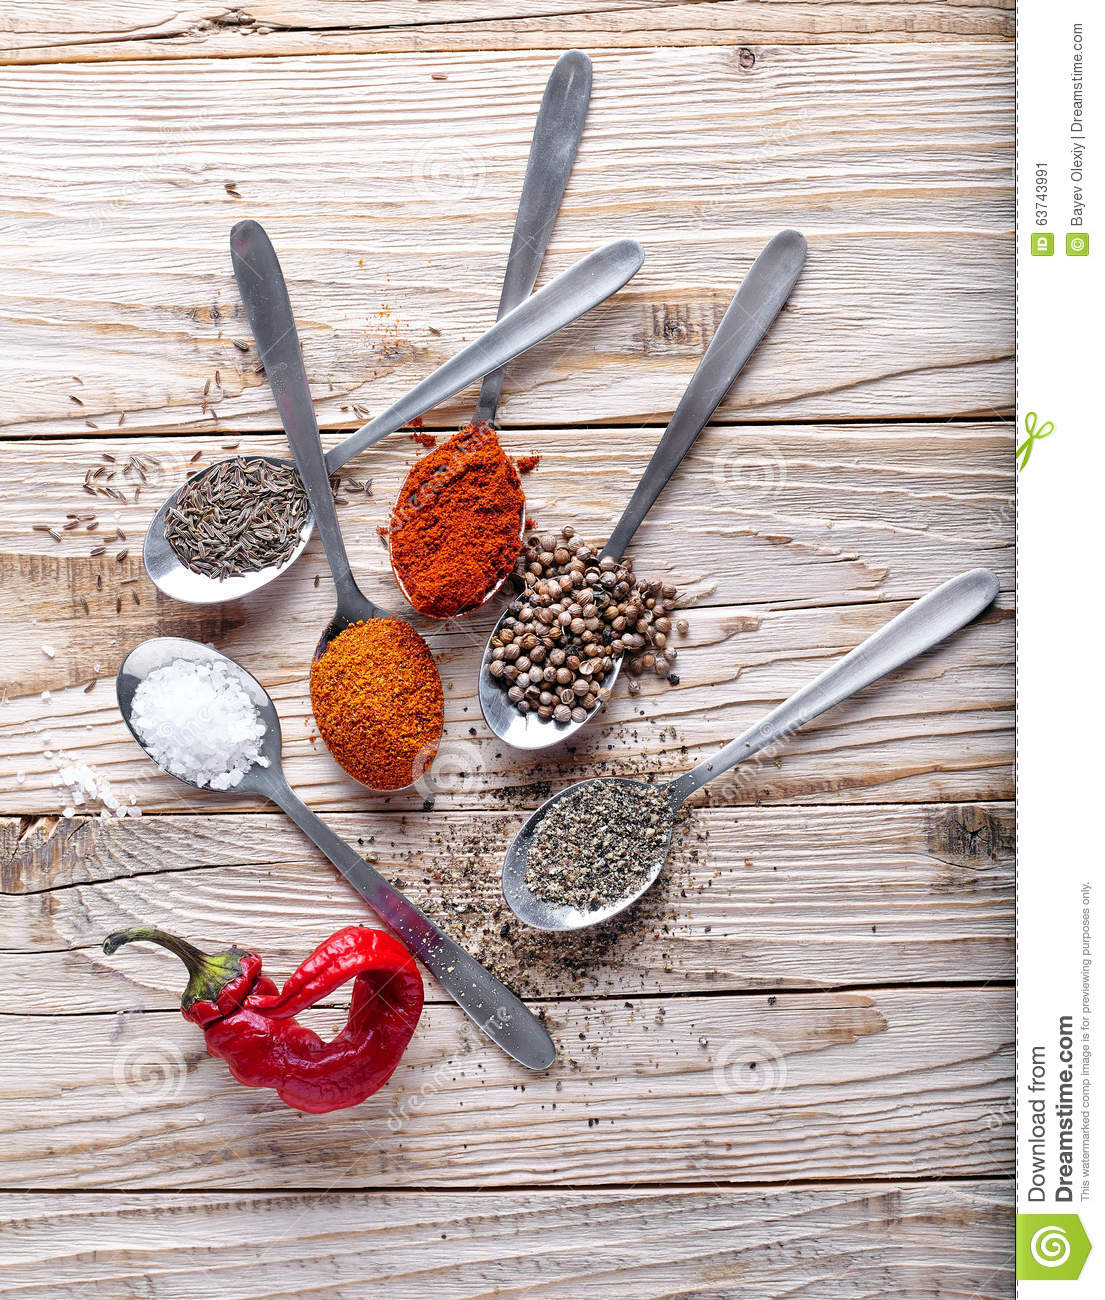 how to make chili powder from spices